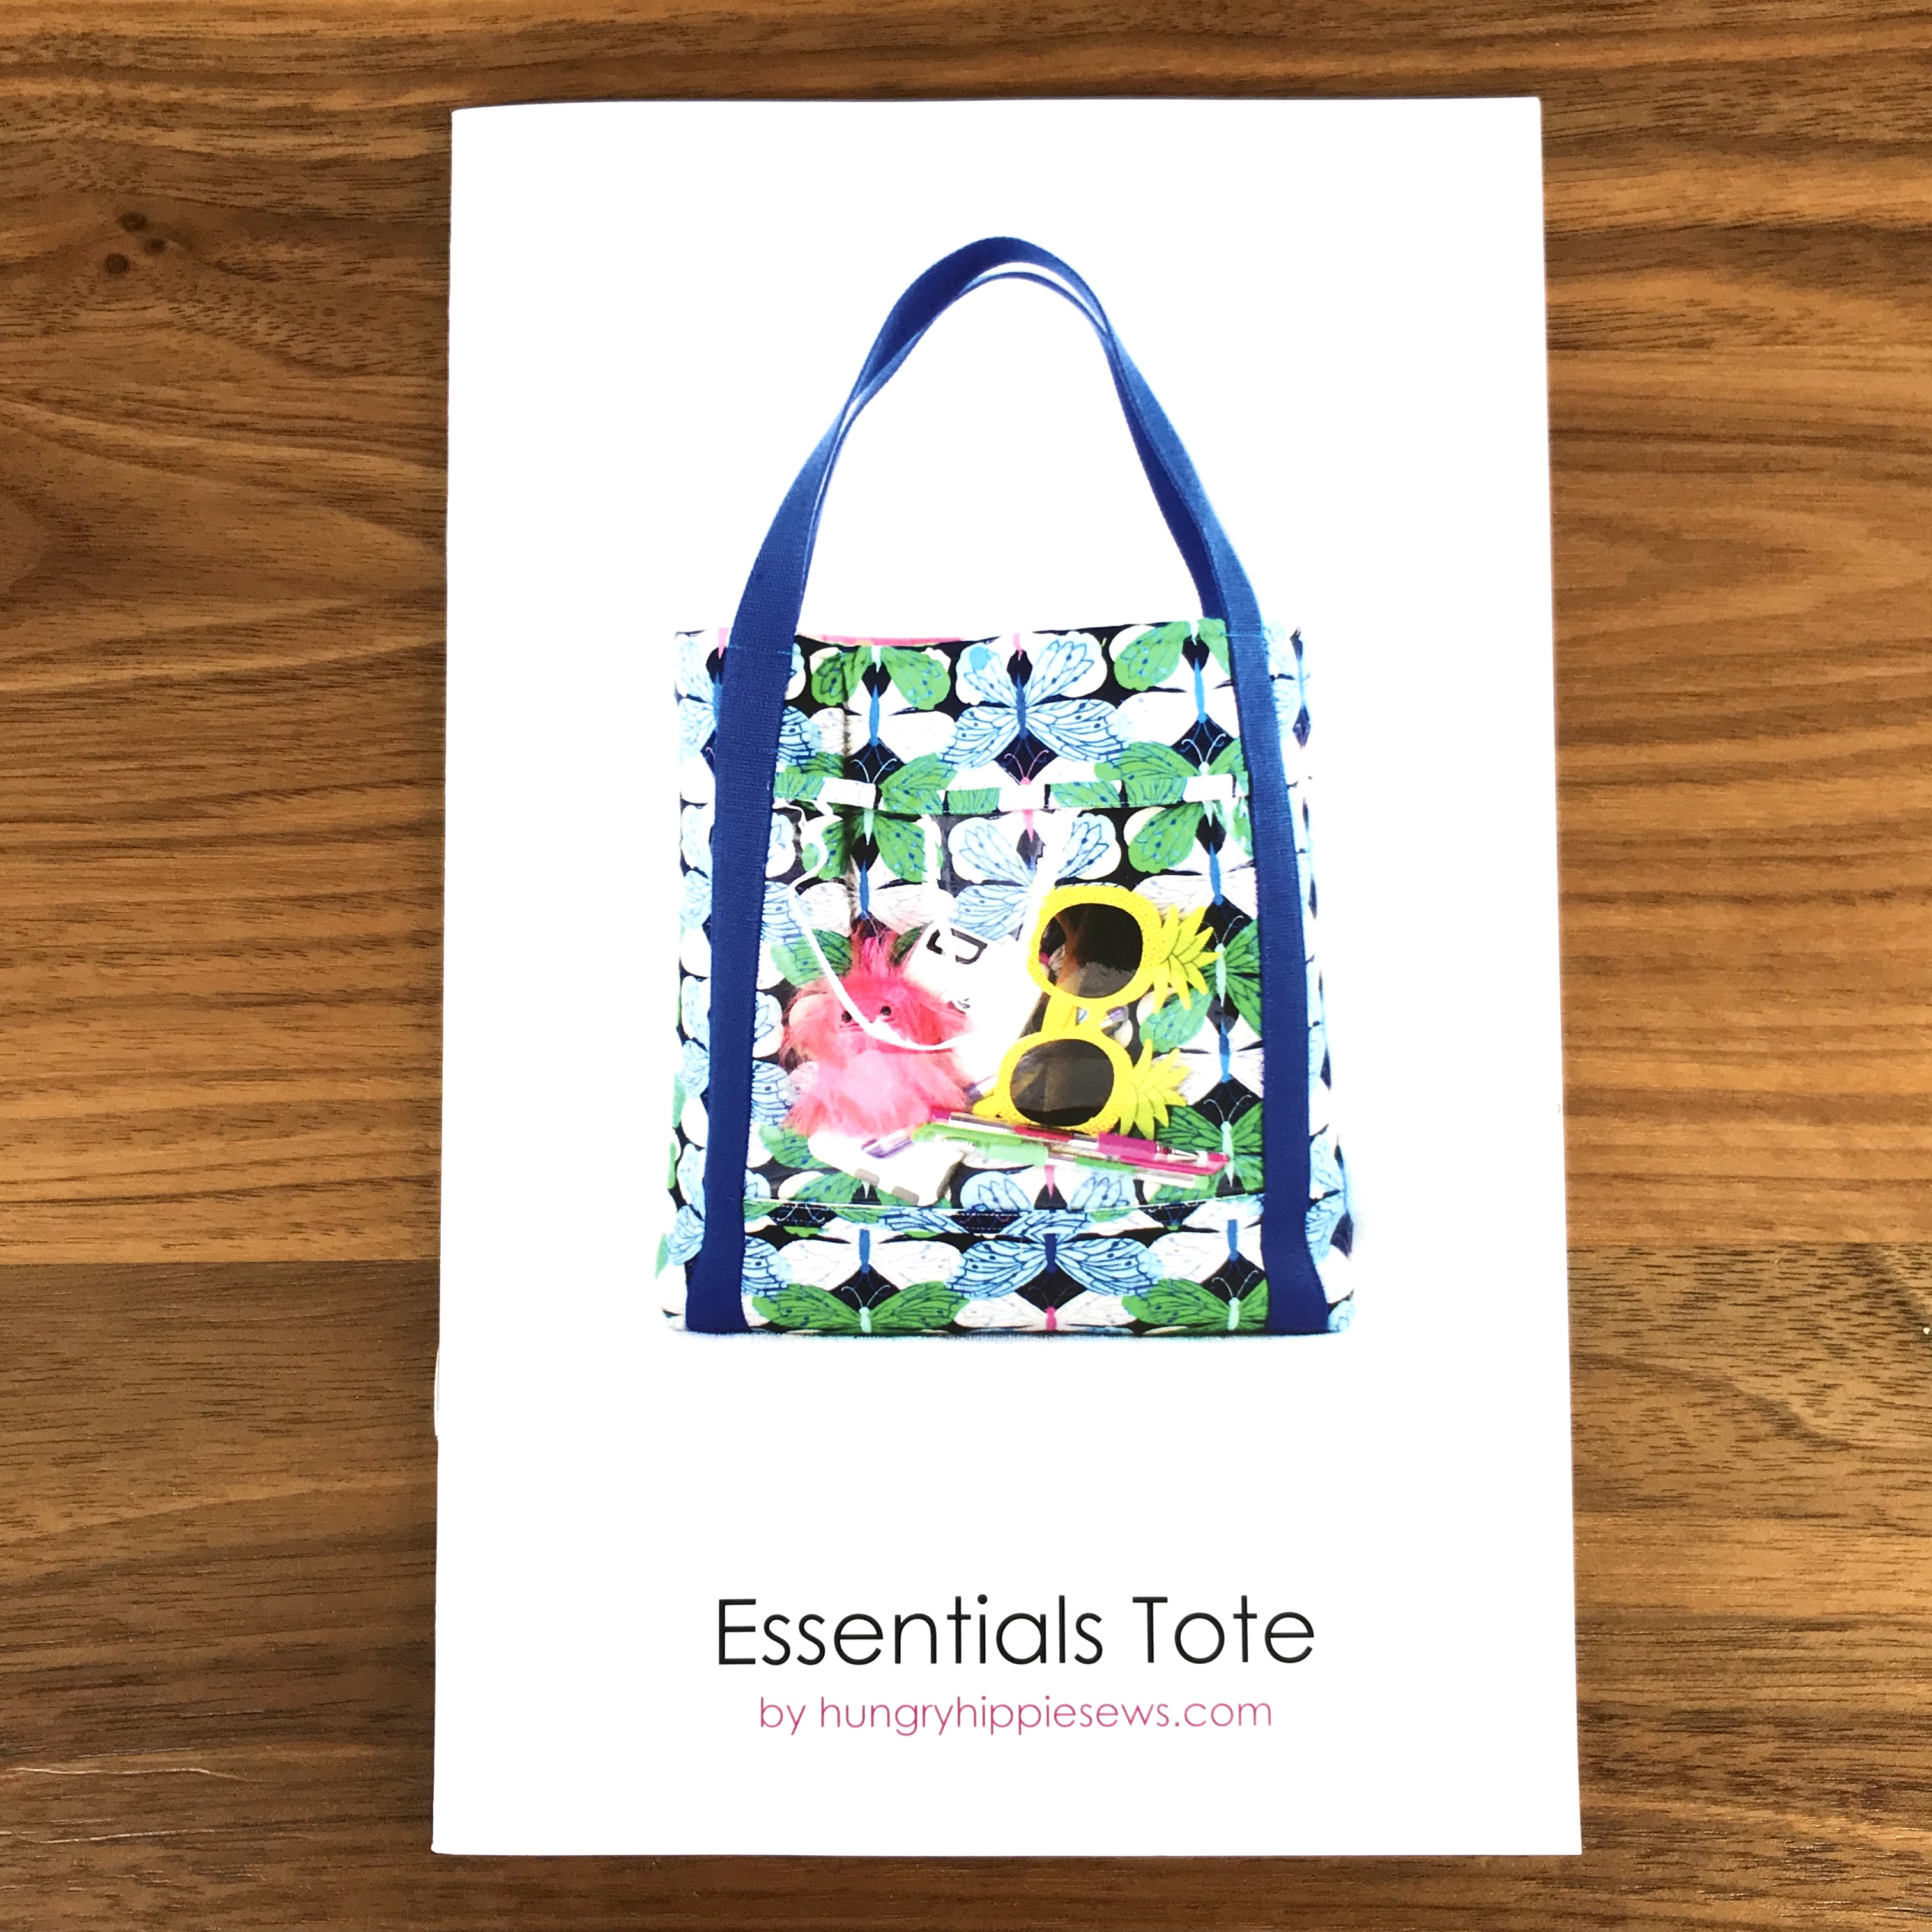 Essentials Tote (Hungry Hippie Sews)